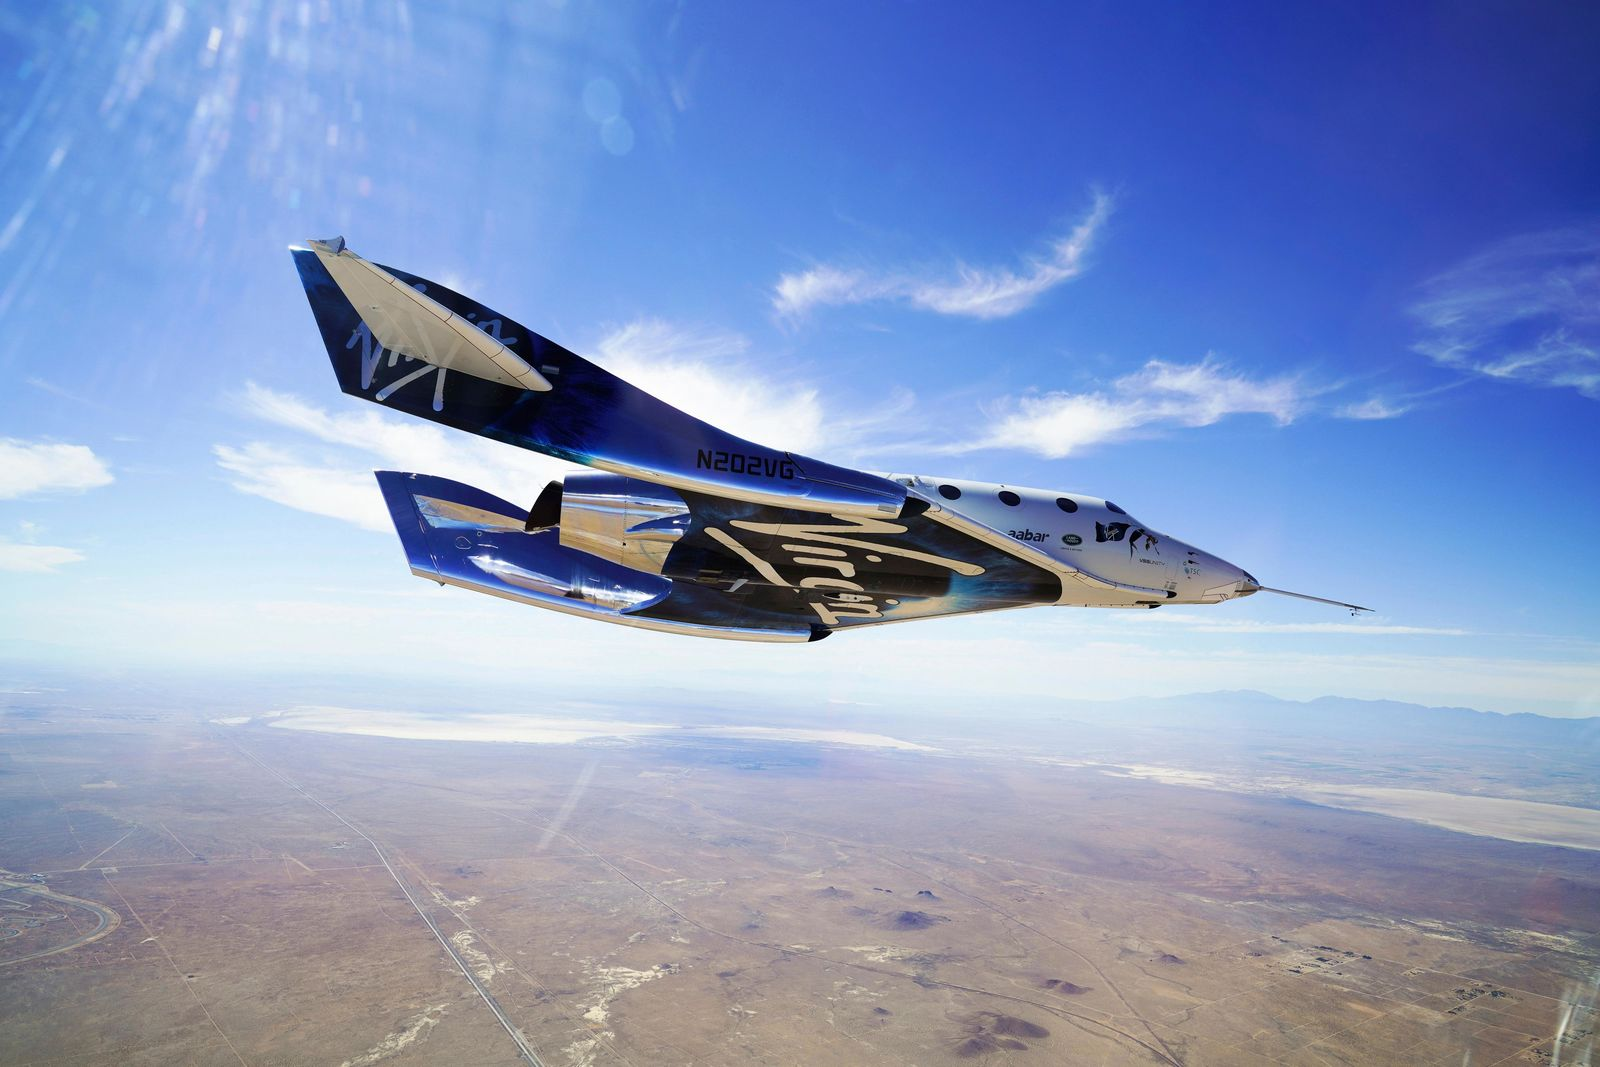 FILE - In this May 29, 2018 photo provided by Virgin Galactic, the VSS Unity craft flies during a supersonic flight test. Virgin Galactic has received nearly 8,000 online reservations of interest since its first successful test flight into space 14 months ago, the company said Tuesday, Feb. 25, 2020, as it nears commercial operation and prepares to reopen ticket sales. (Virgin Galactic via AP, File)